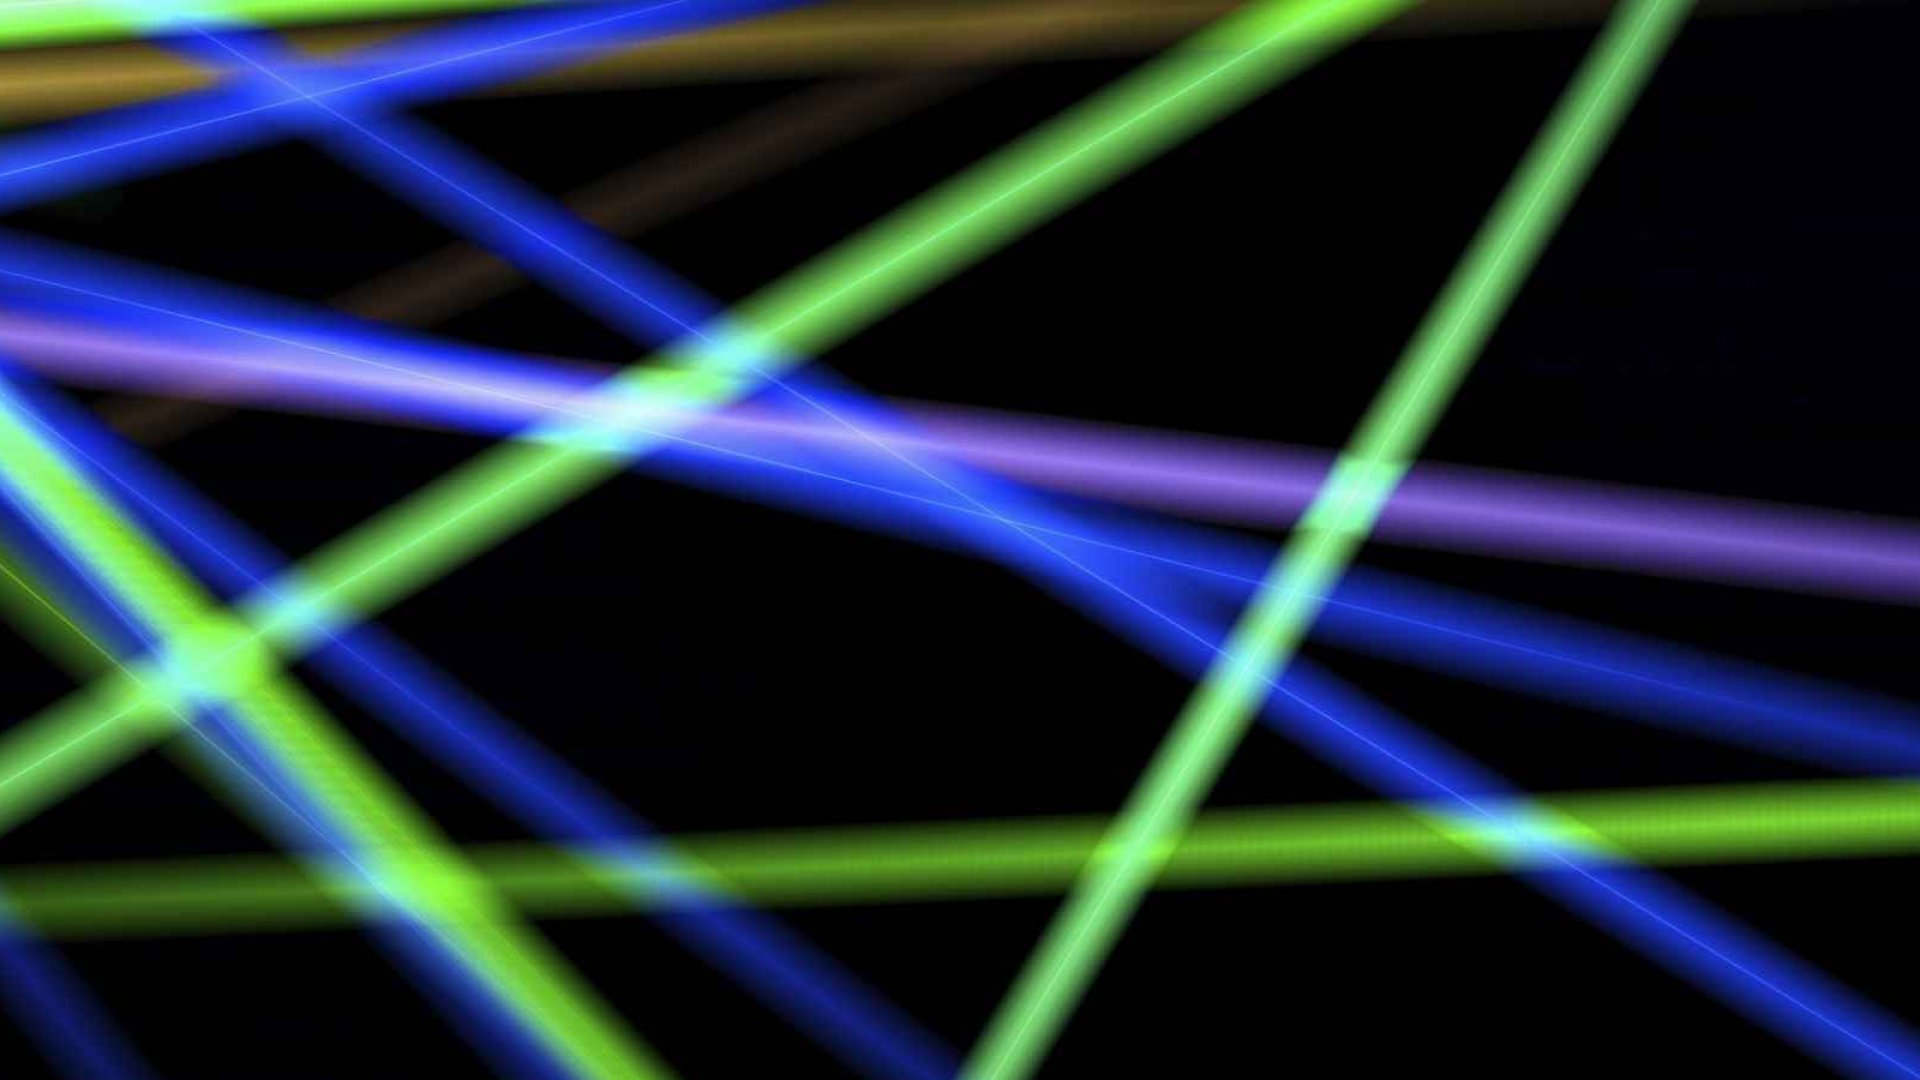 2015 was the year of the laser light projection.